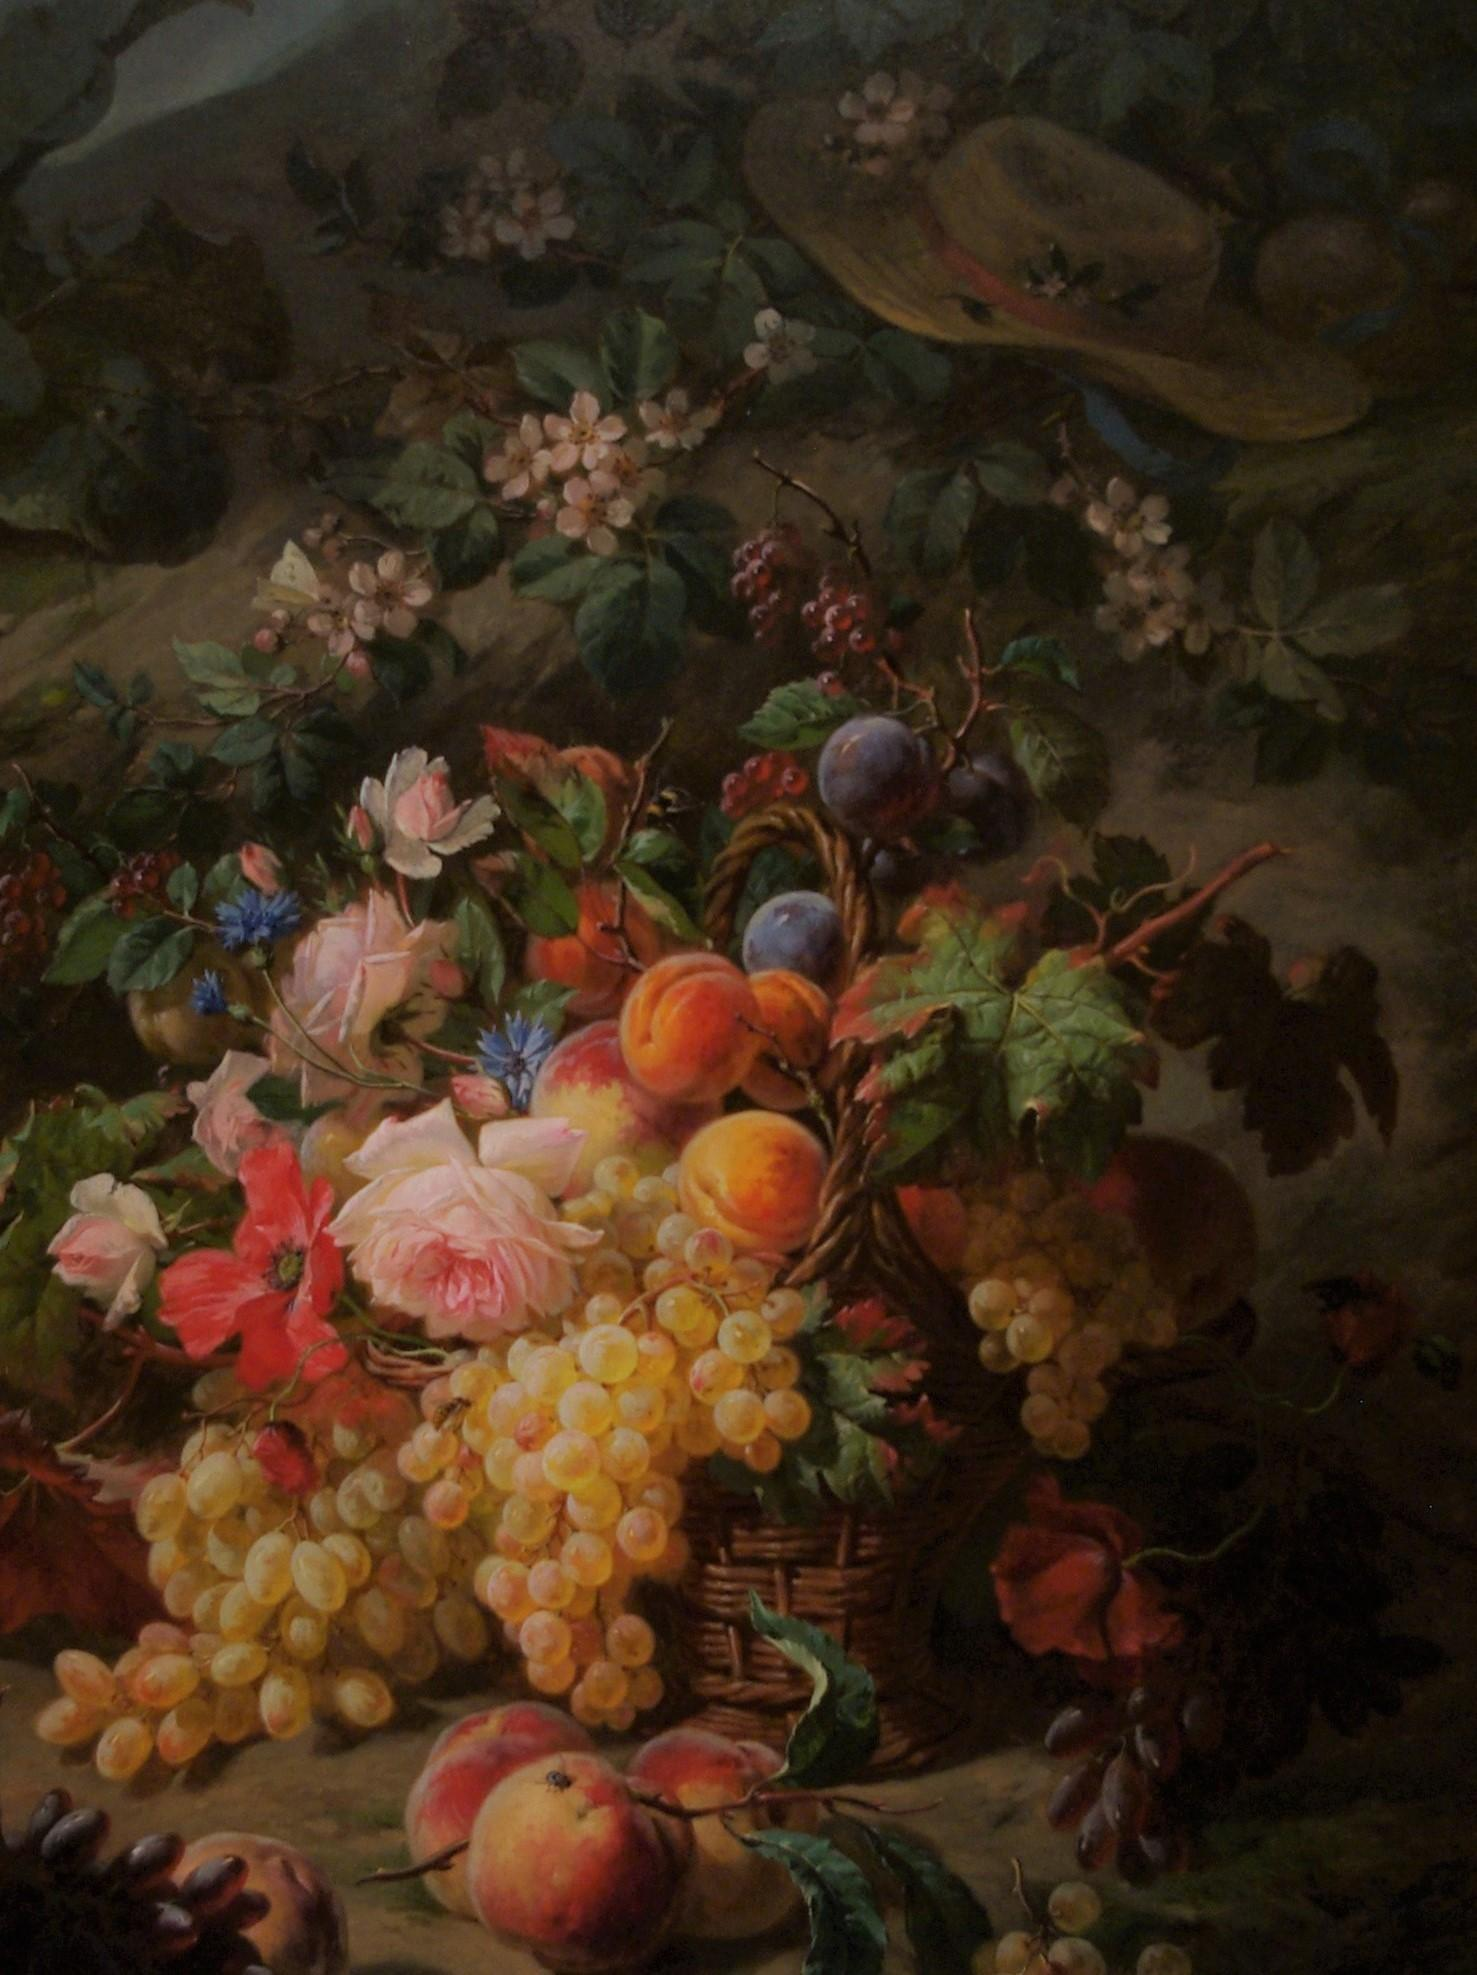 A Still Life of Fruits and Flowers on a Mossy Bank